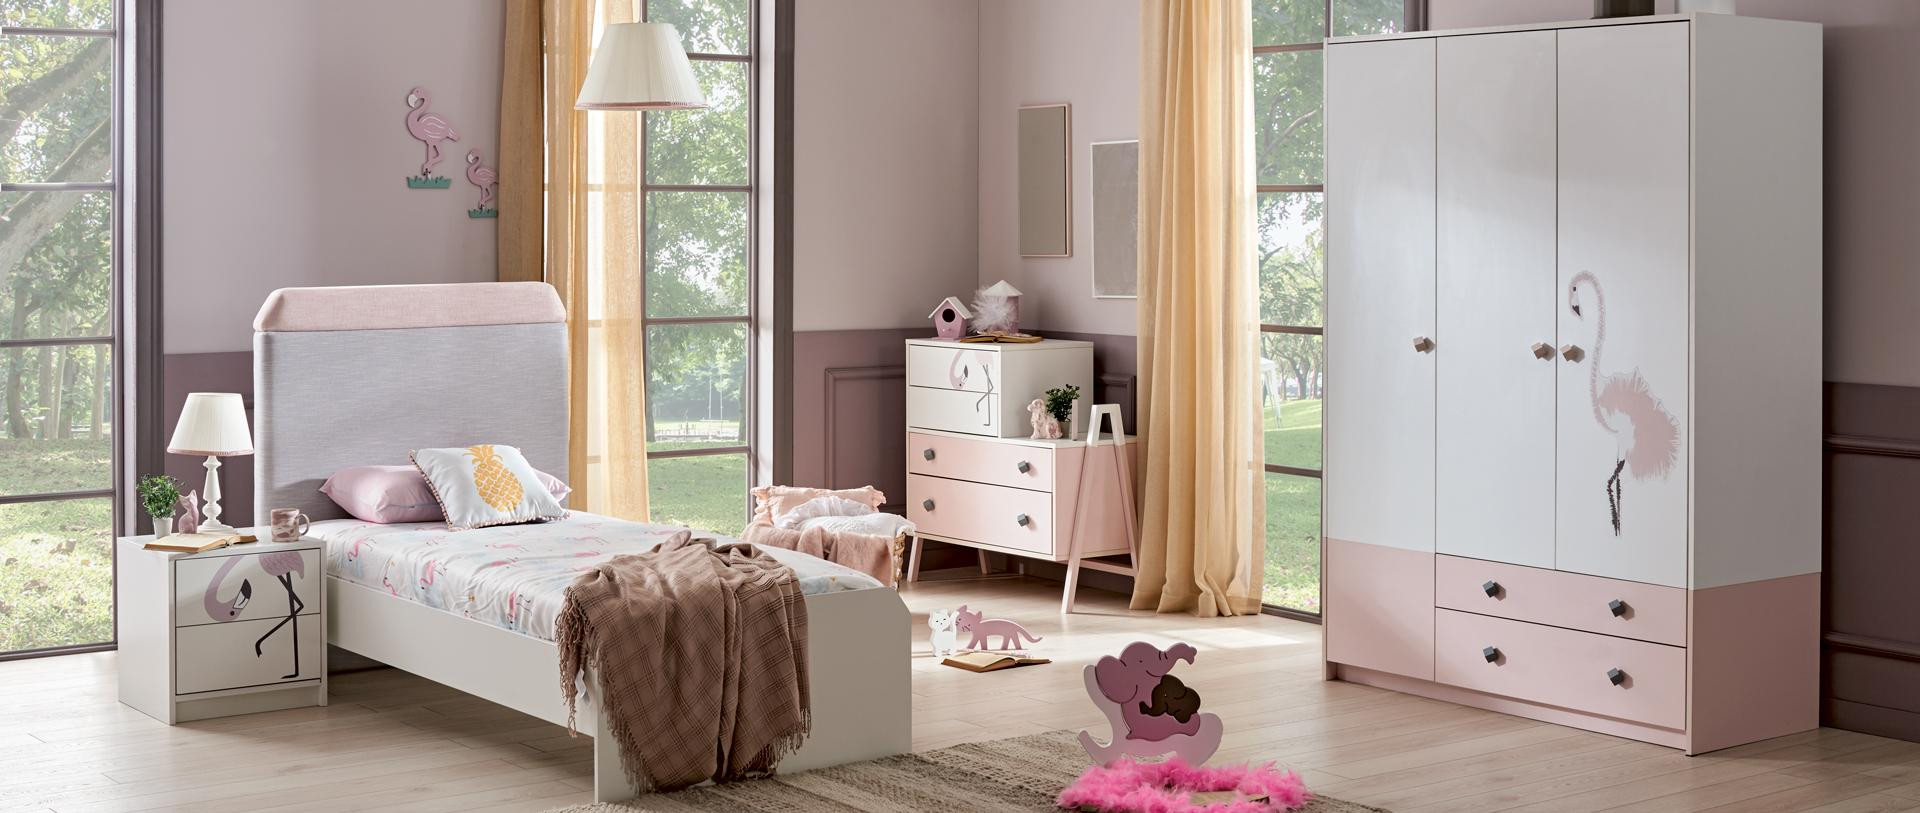 ALFEMO KIDS&TEENS FLAMINGO YOUNG ROOM